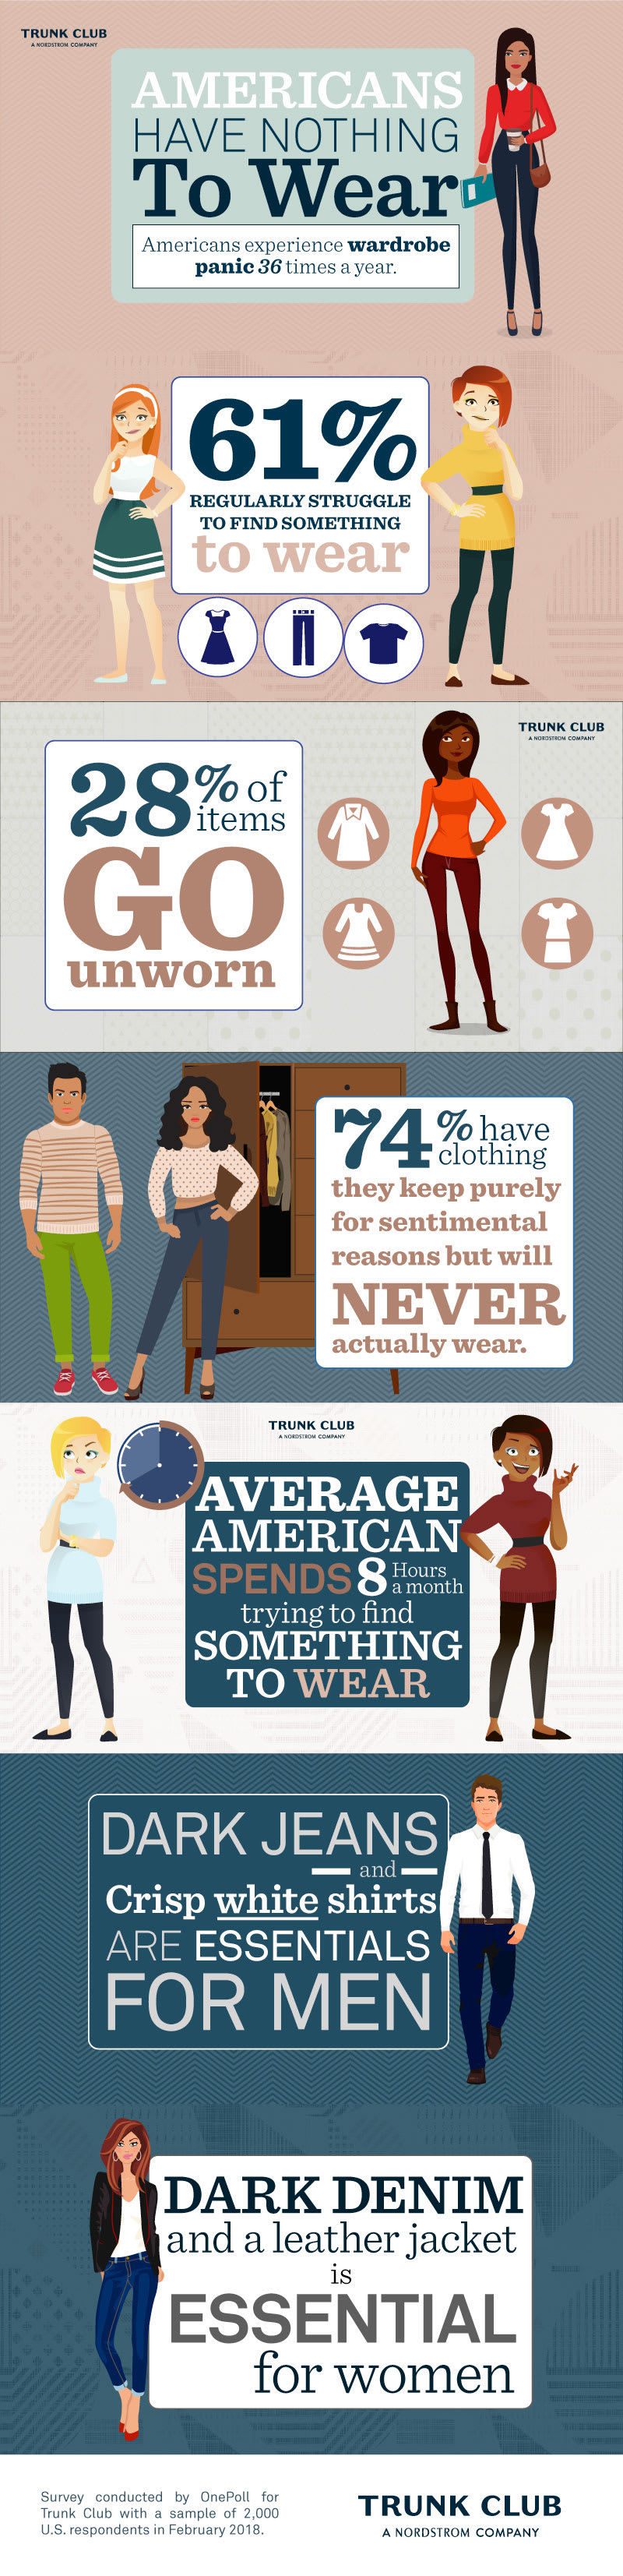 Americans have nothing to wear